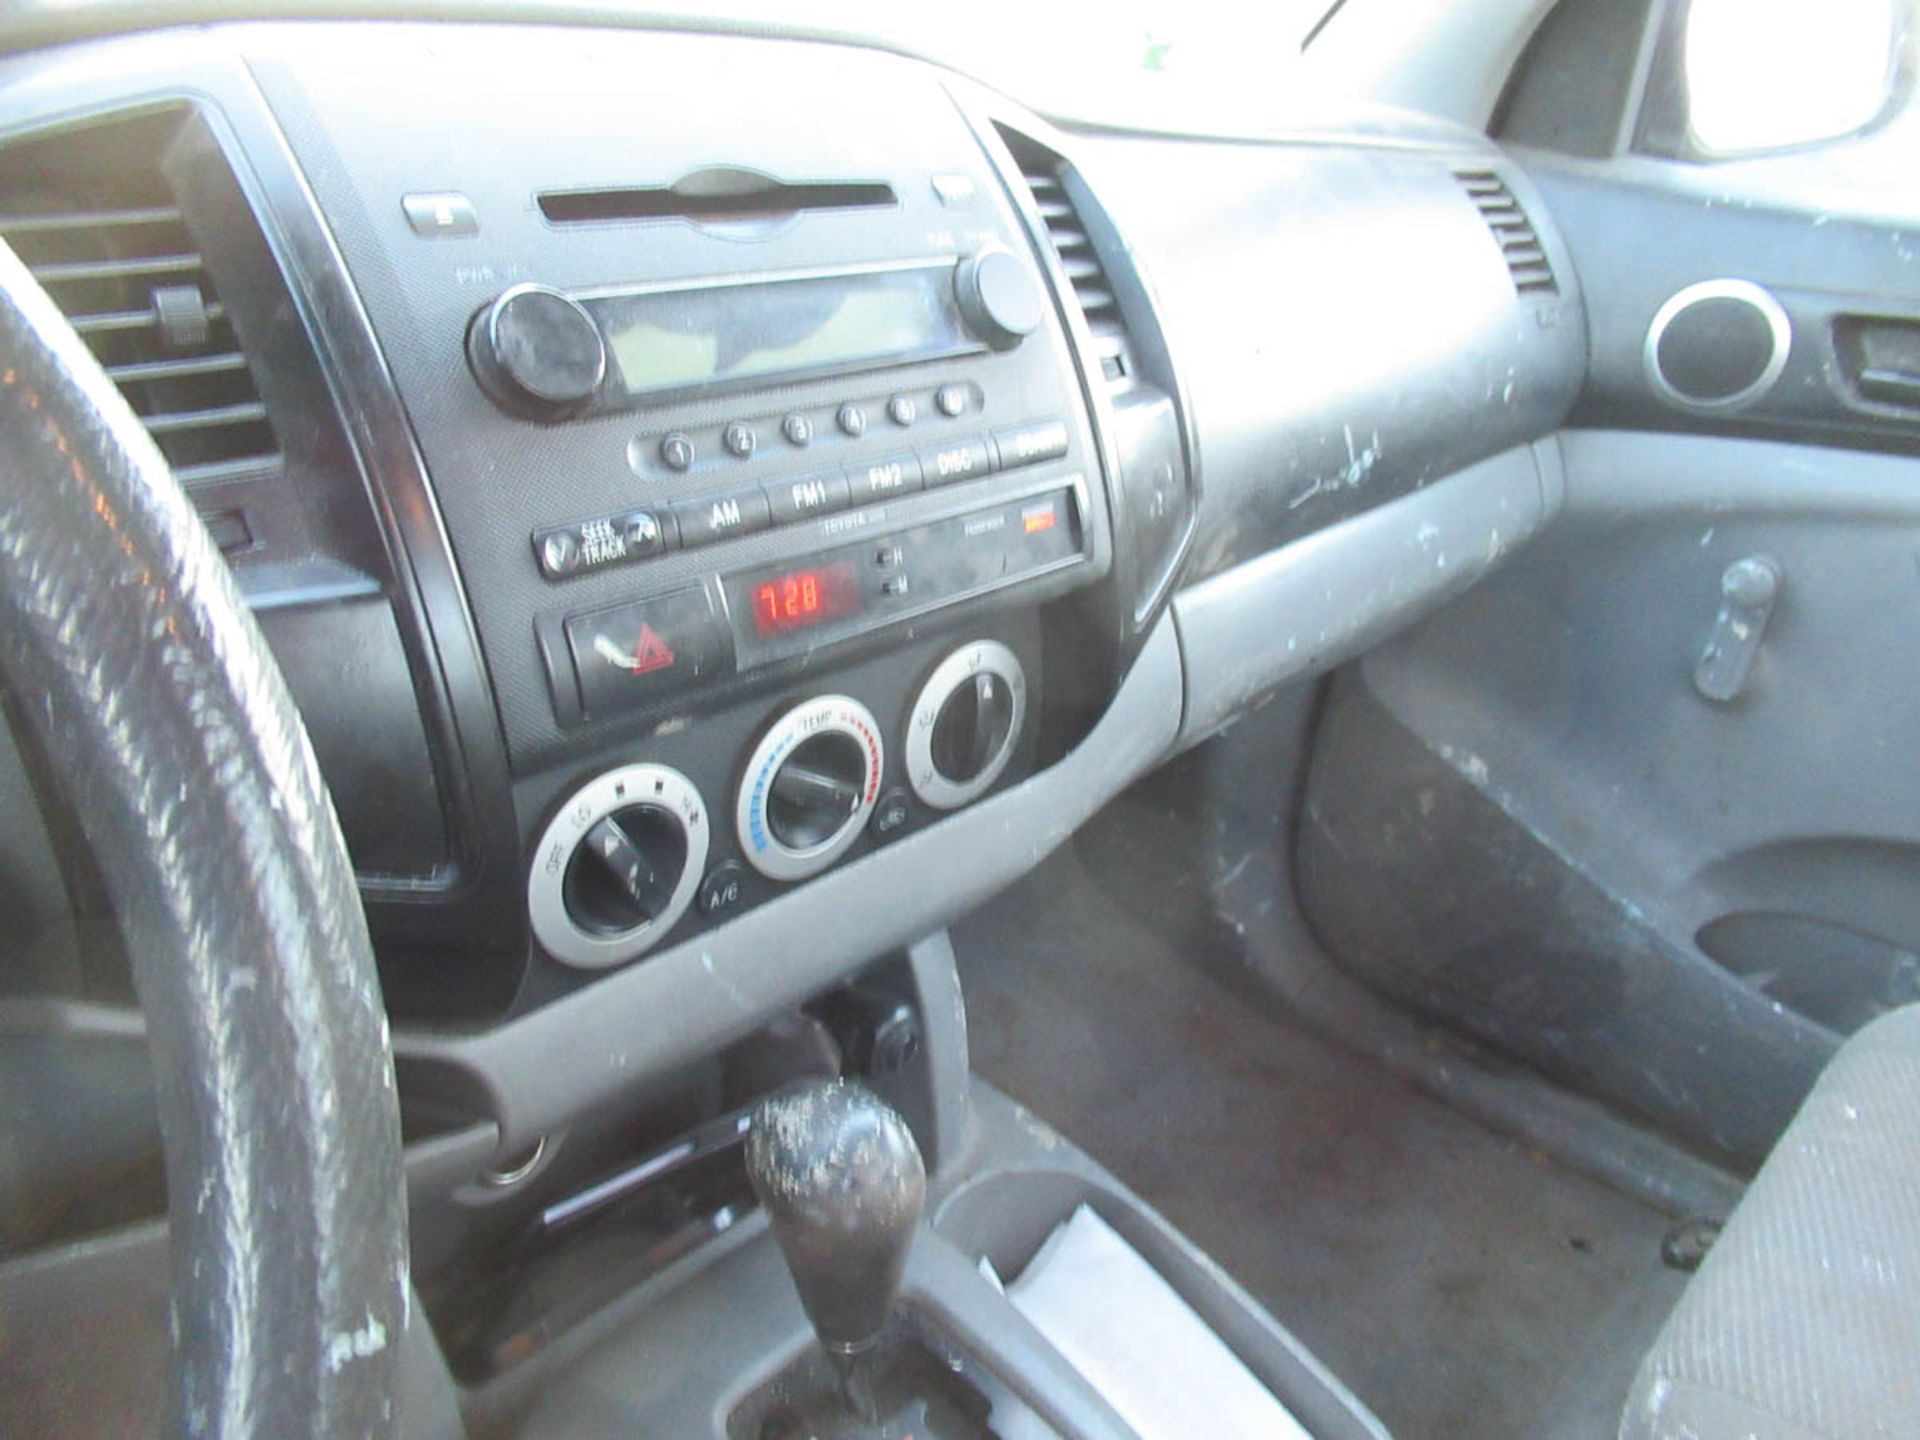 2008 TOYOTA TACOMA PICKUP TRUCK, AUTOMATIC, WITH APPROXIMATELY 105,732 MILES, VIN: 5TENX22N382504186 - Image 6 of 12